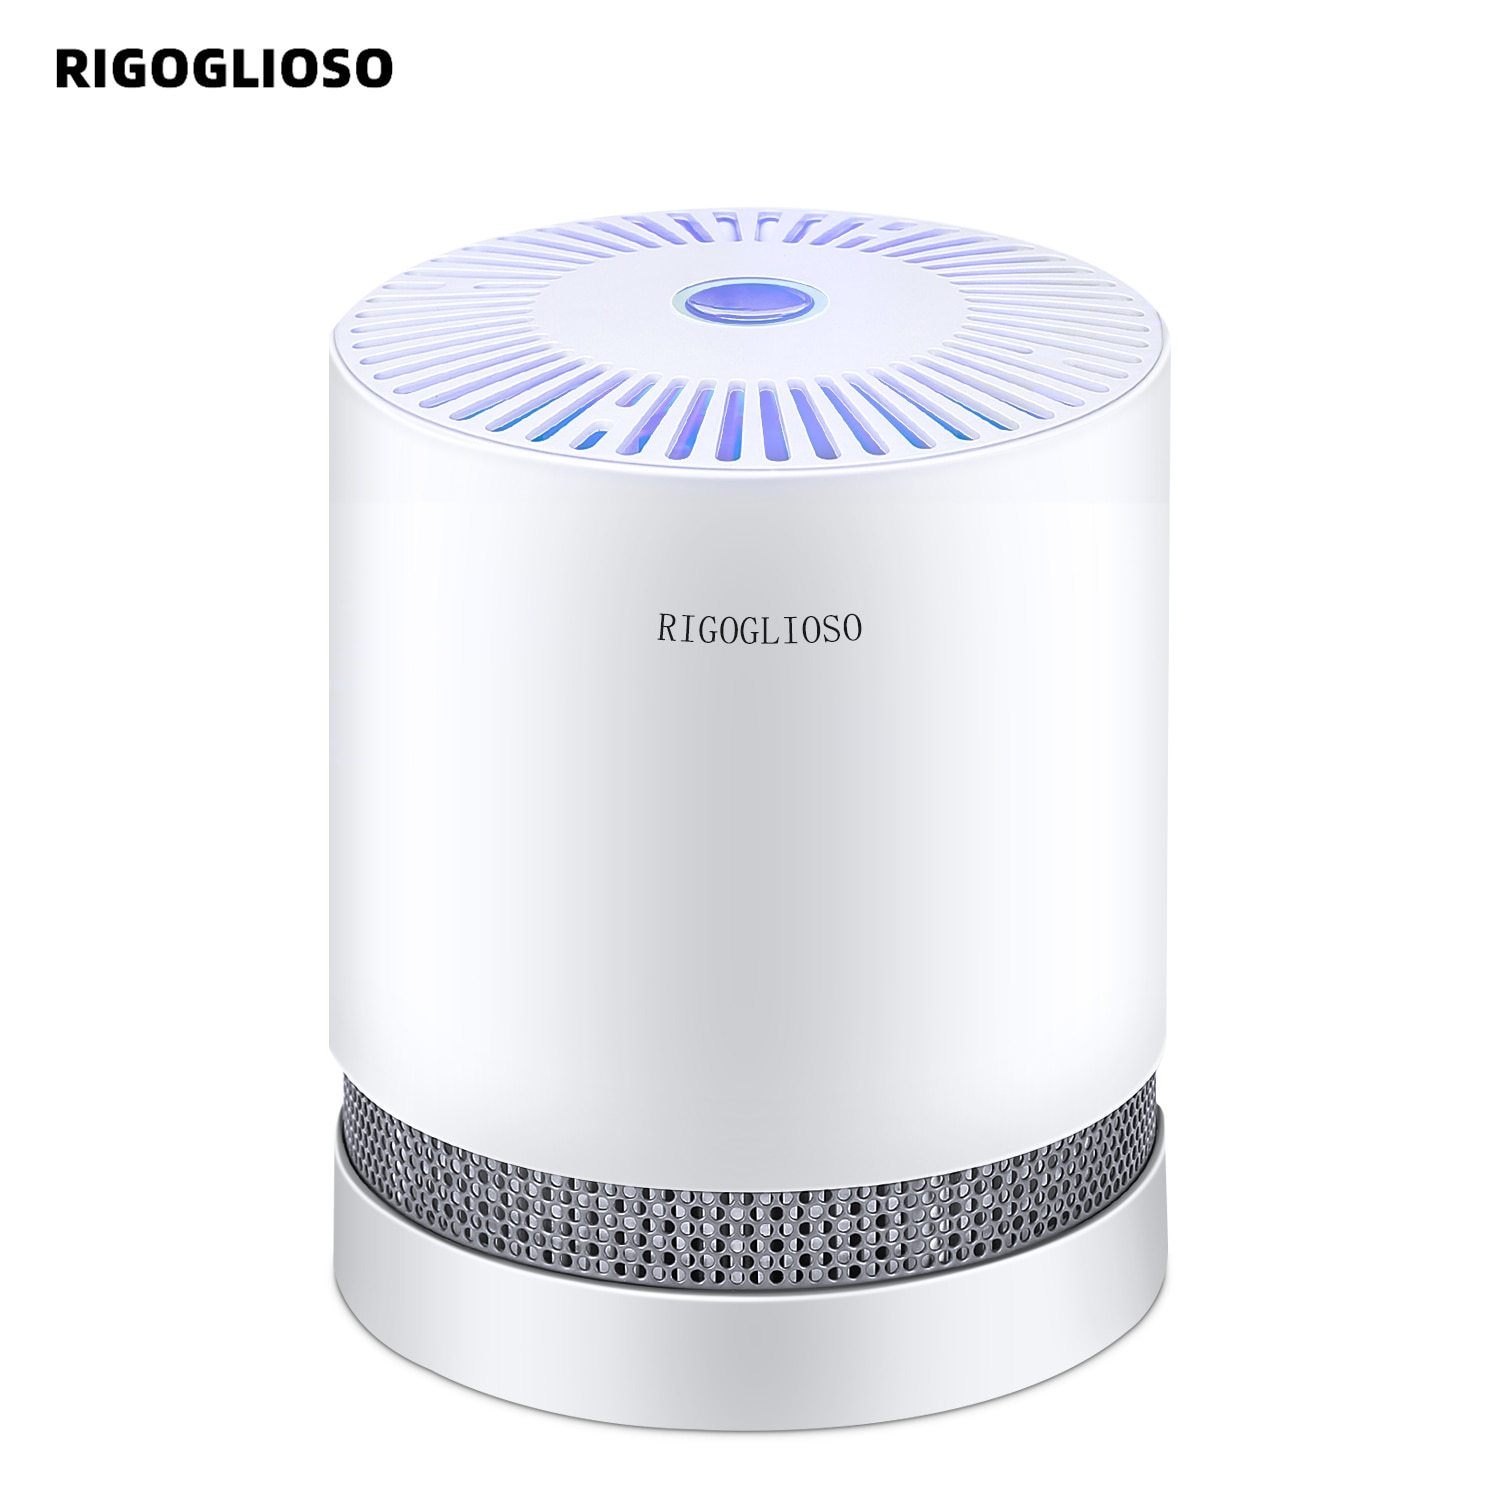 RIGOGLIOSO Air Purifier For Home True HEPA Filters Compact Desktop Purifiers Filtration with Night L